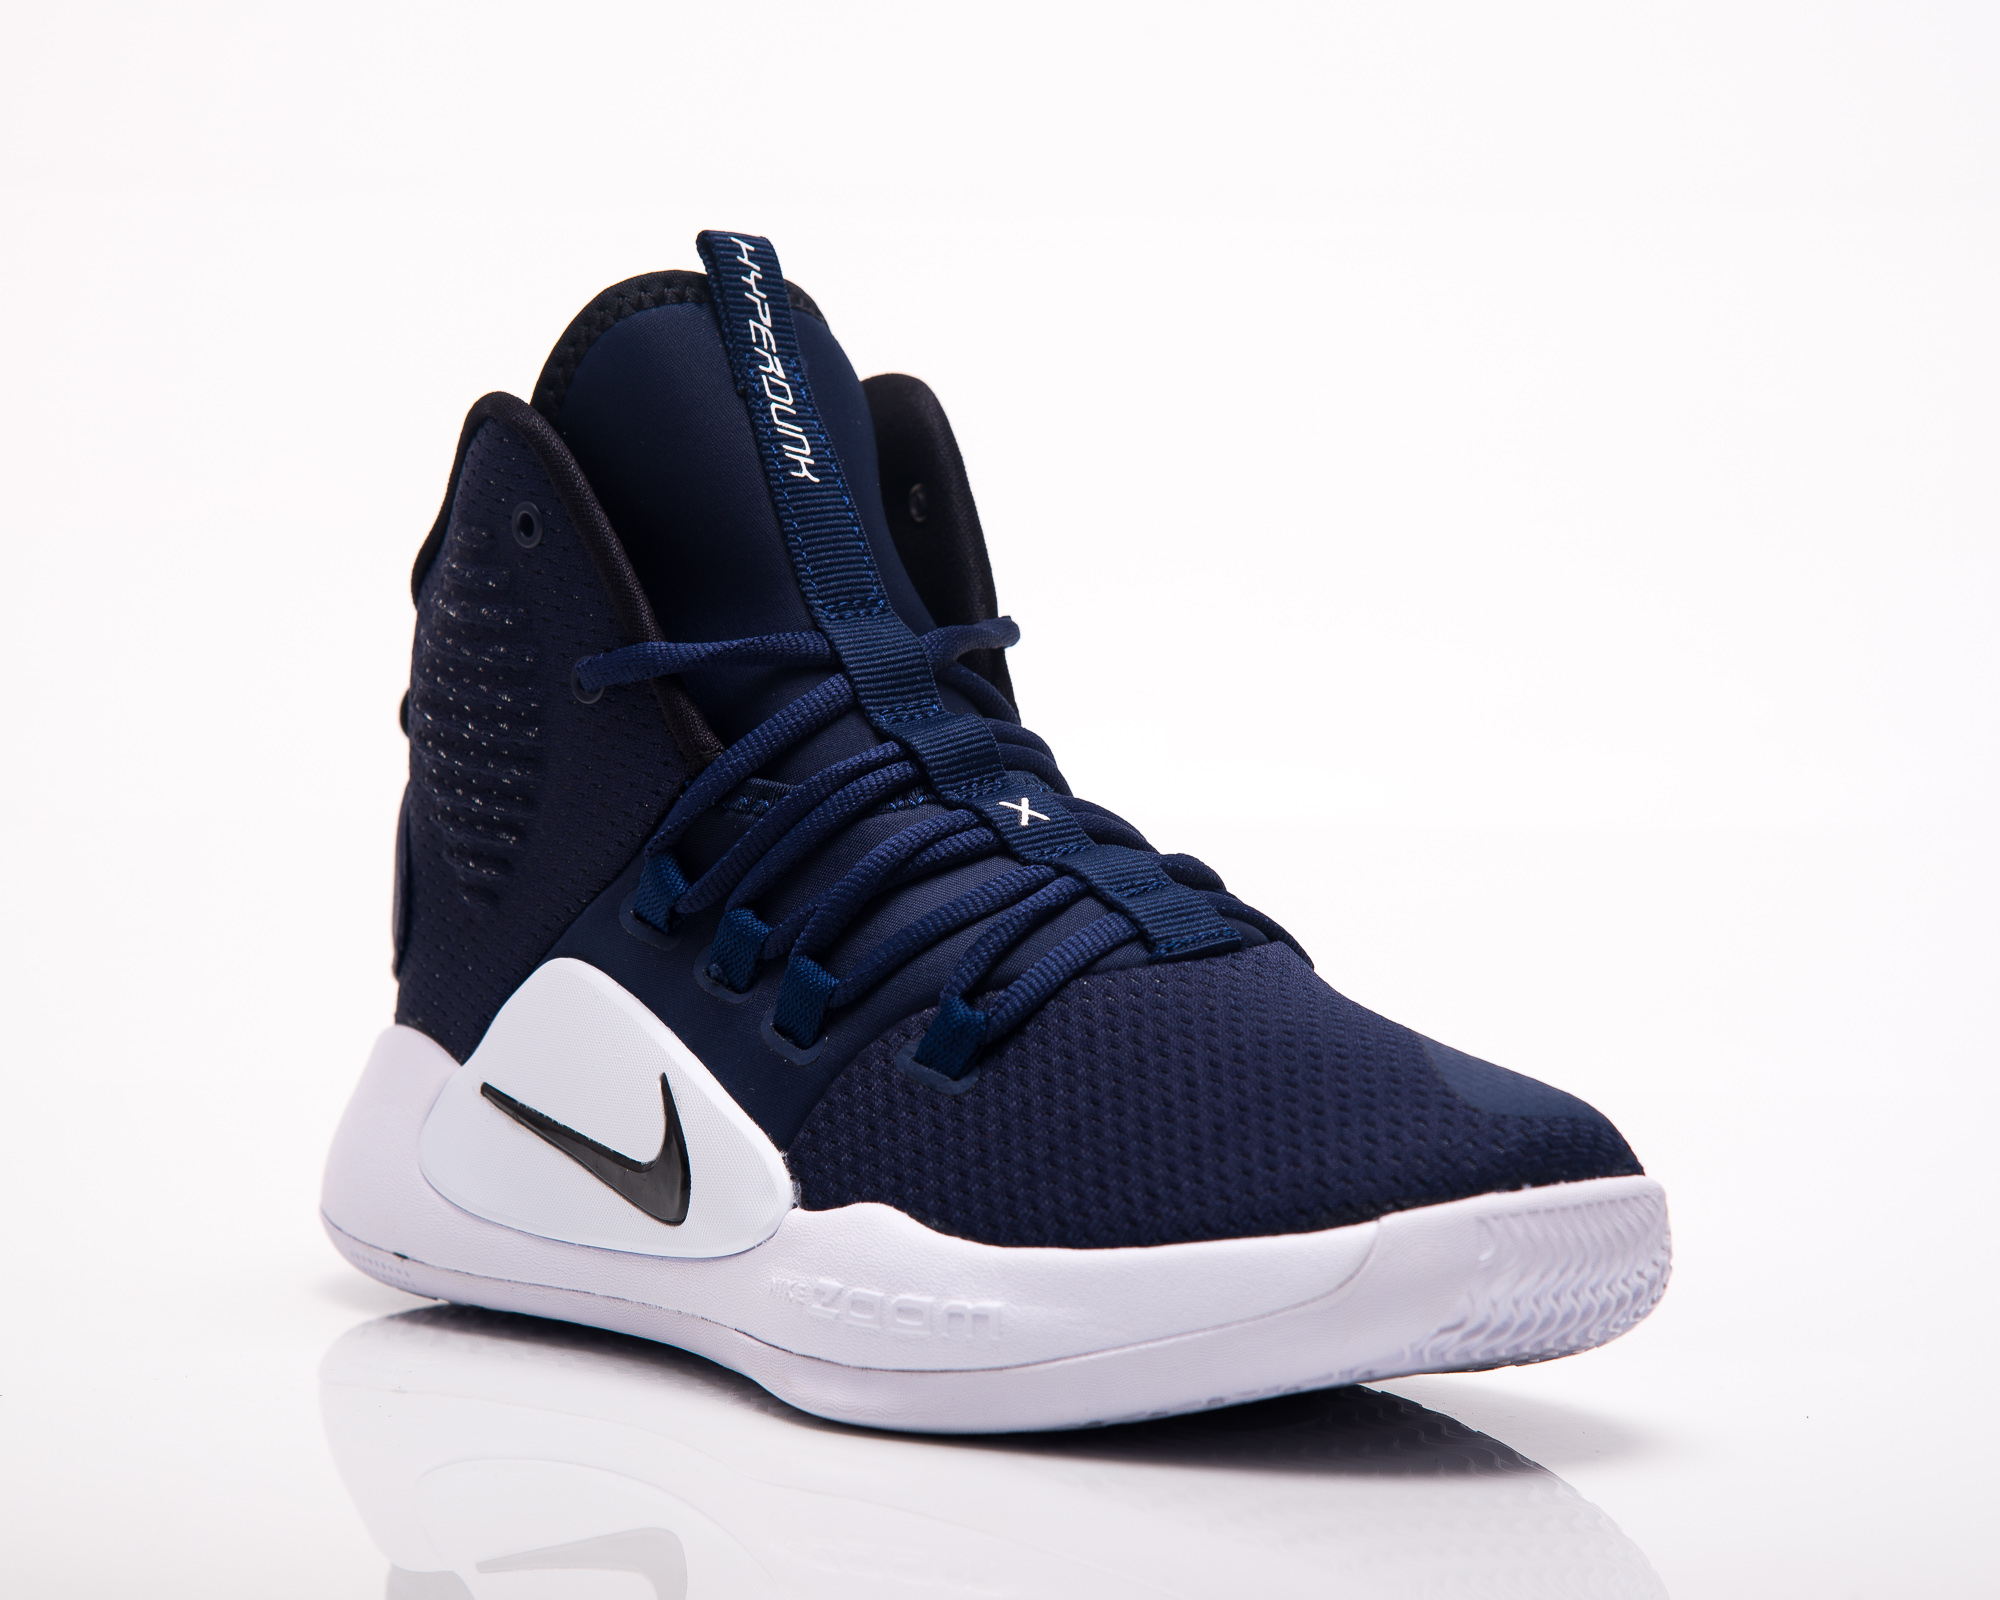 new concept 88d6f 47063 Nike Hyperdunk X TB Basketball Shoes